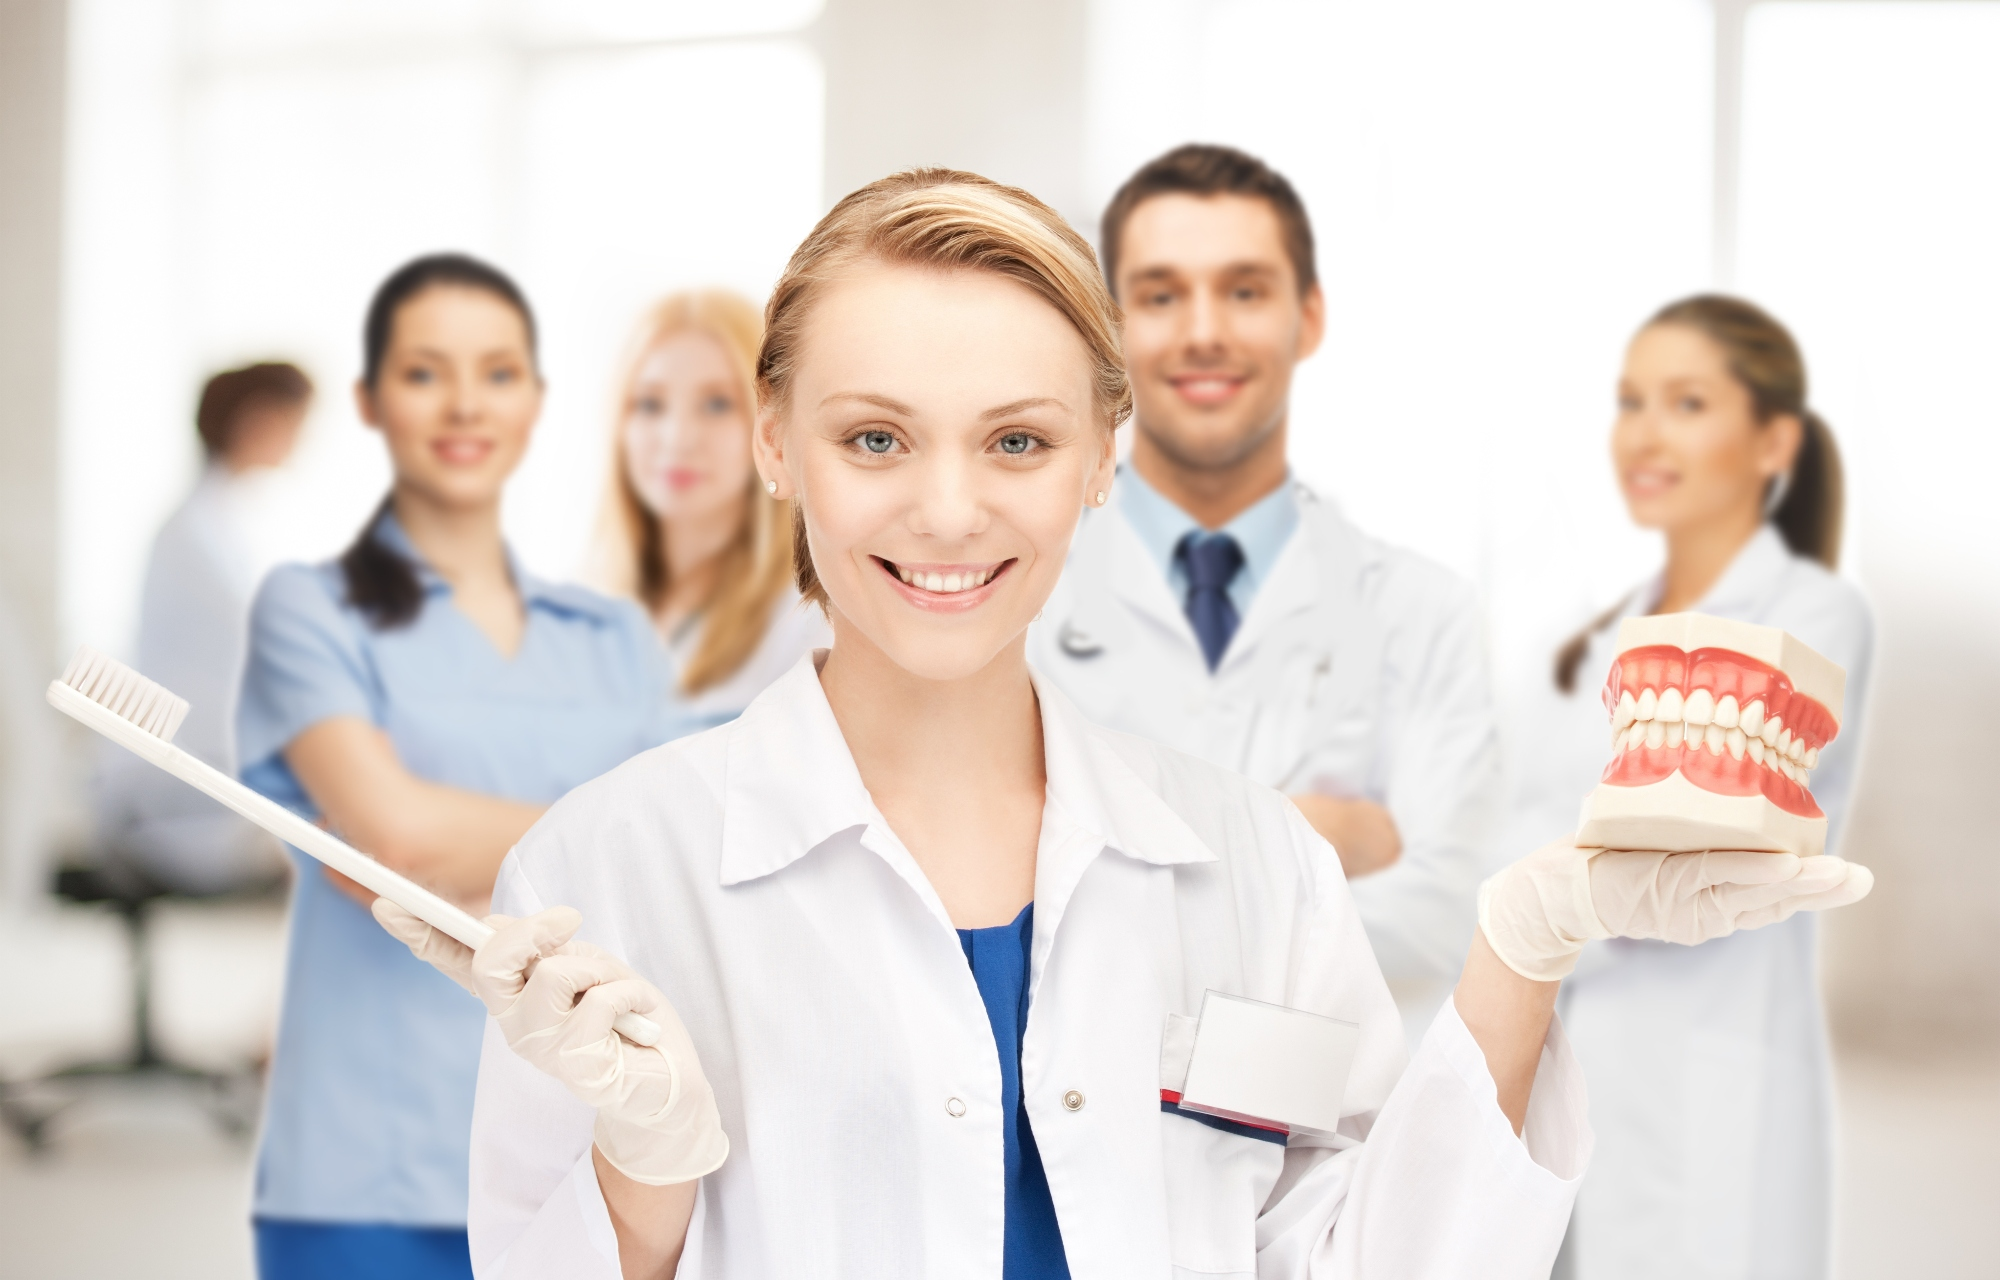 Tips for working with millennial dentists